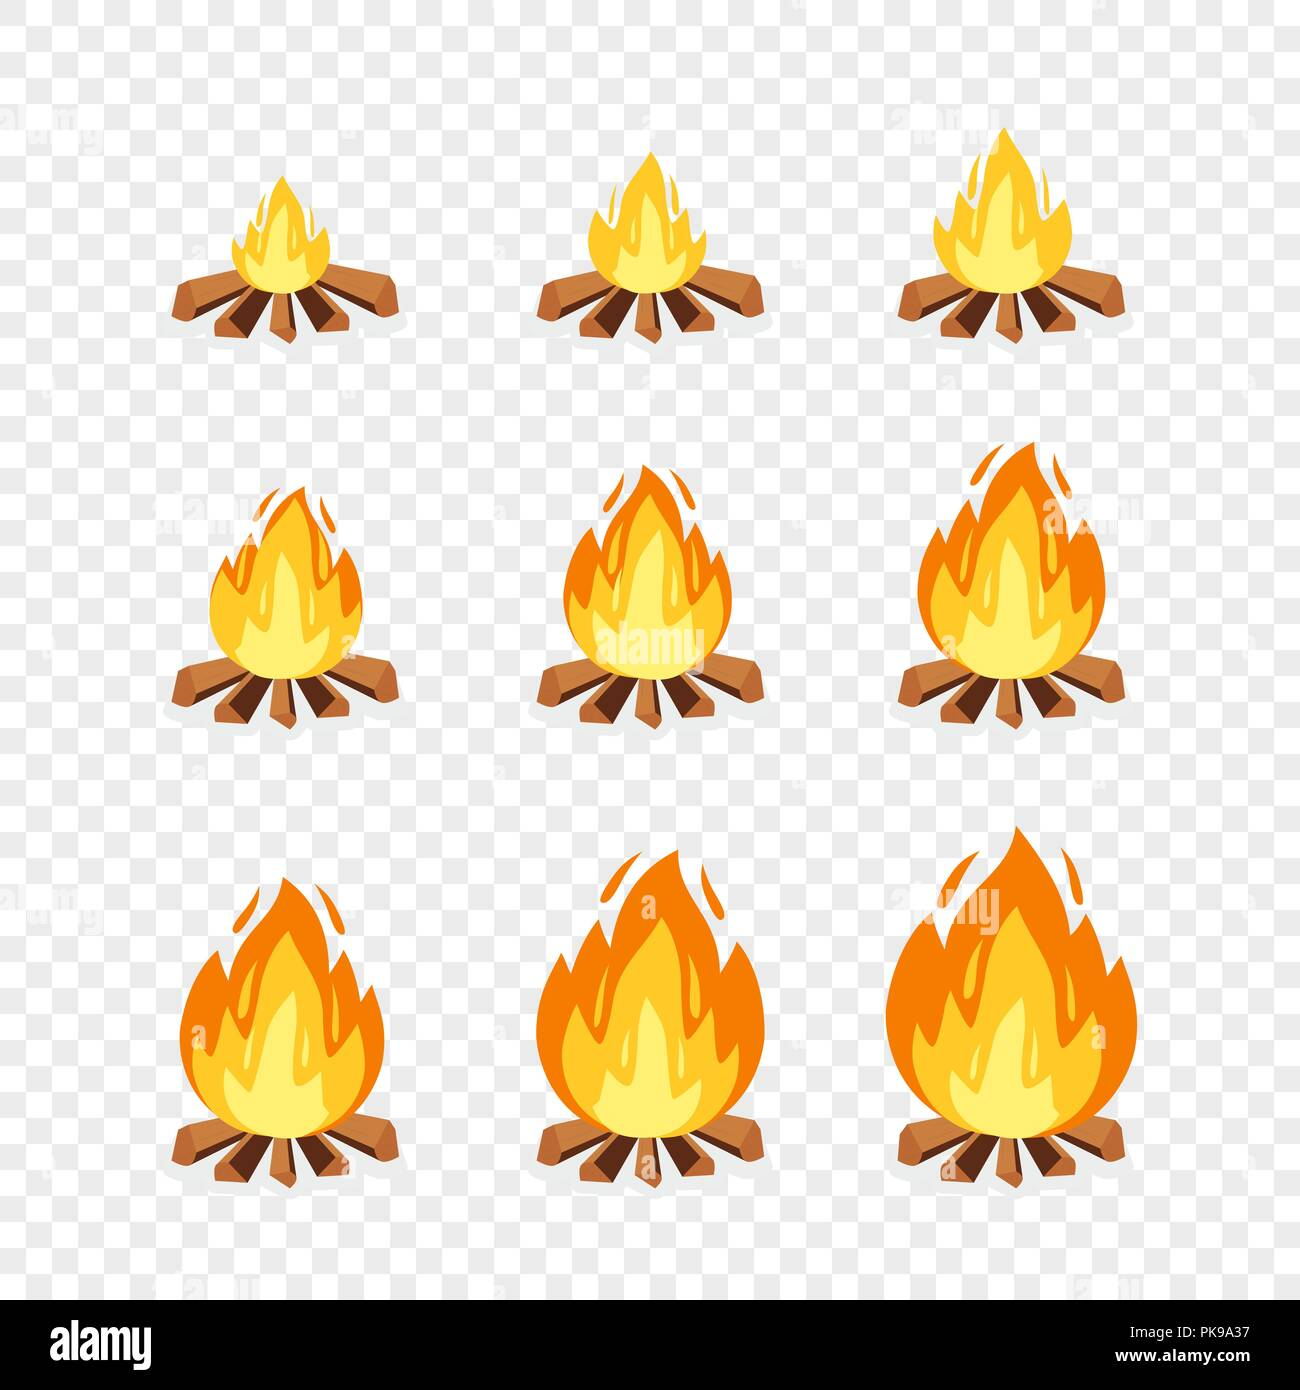 illustration set cartoon blaze fire high resolution stock photography and images alamy https www alamy com set of camp fire sprites for animation vector cartoon illustration bonfire burning frames explosion torch flames campfire for game design on transparent background image218408379 html